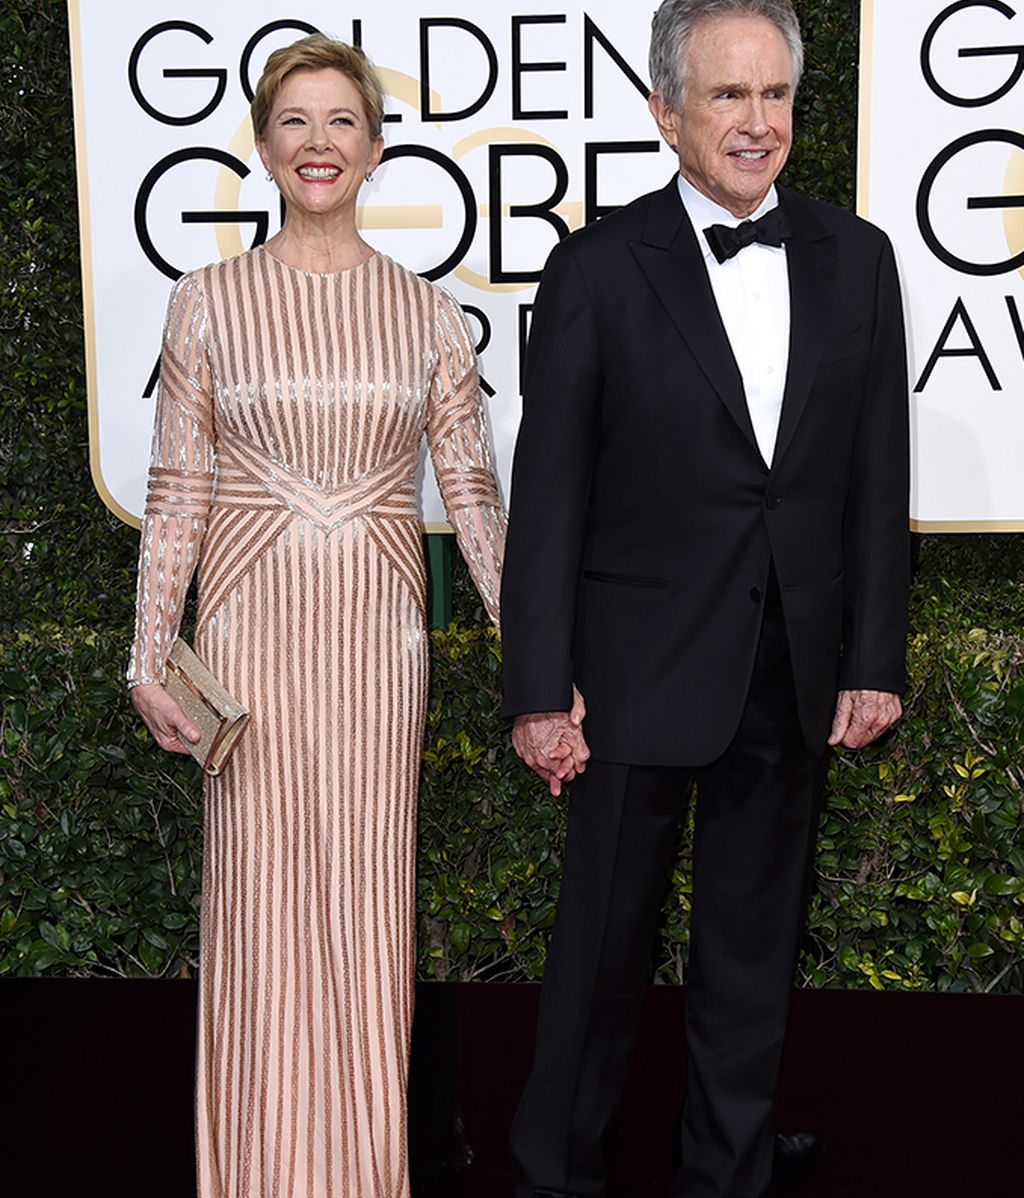 Posado de Annette Bening y Warren Beatty